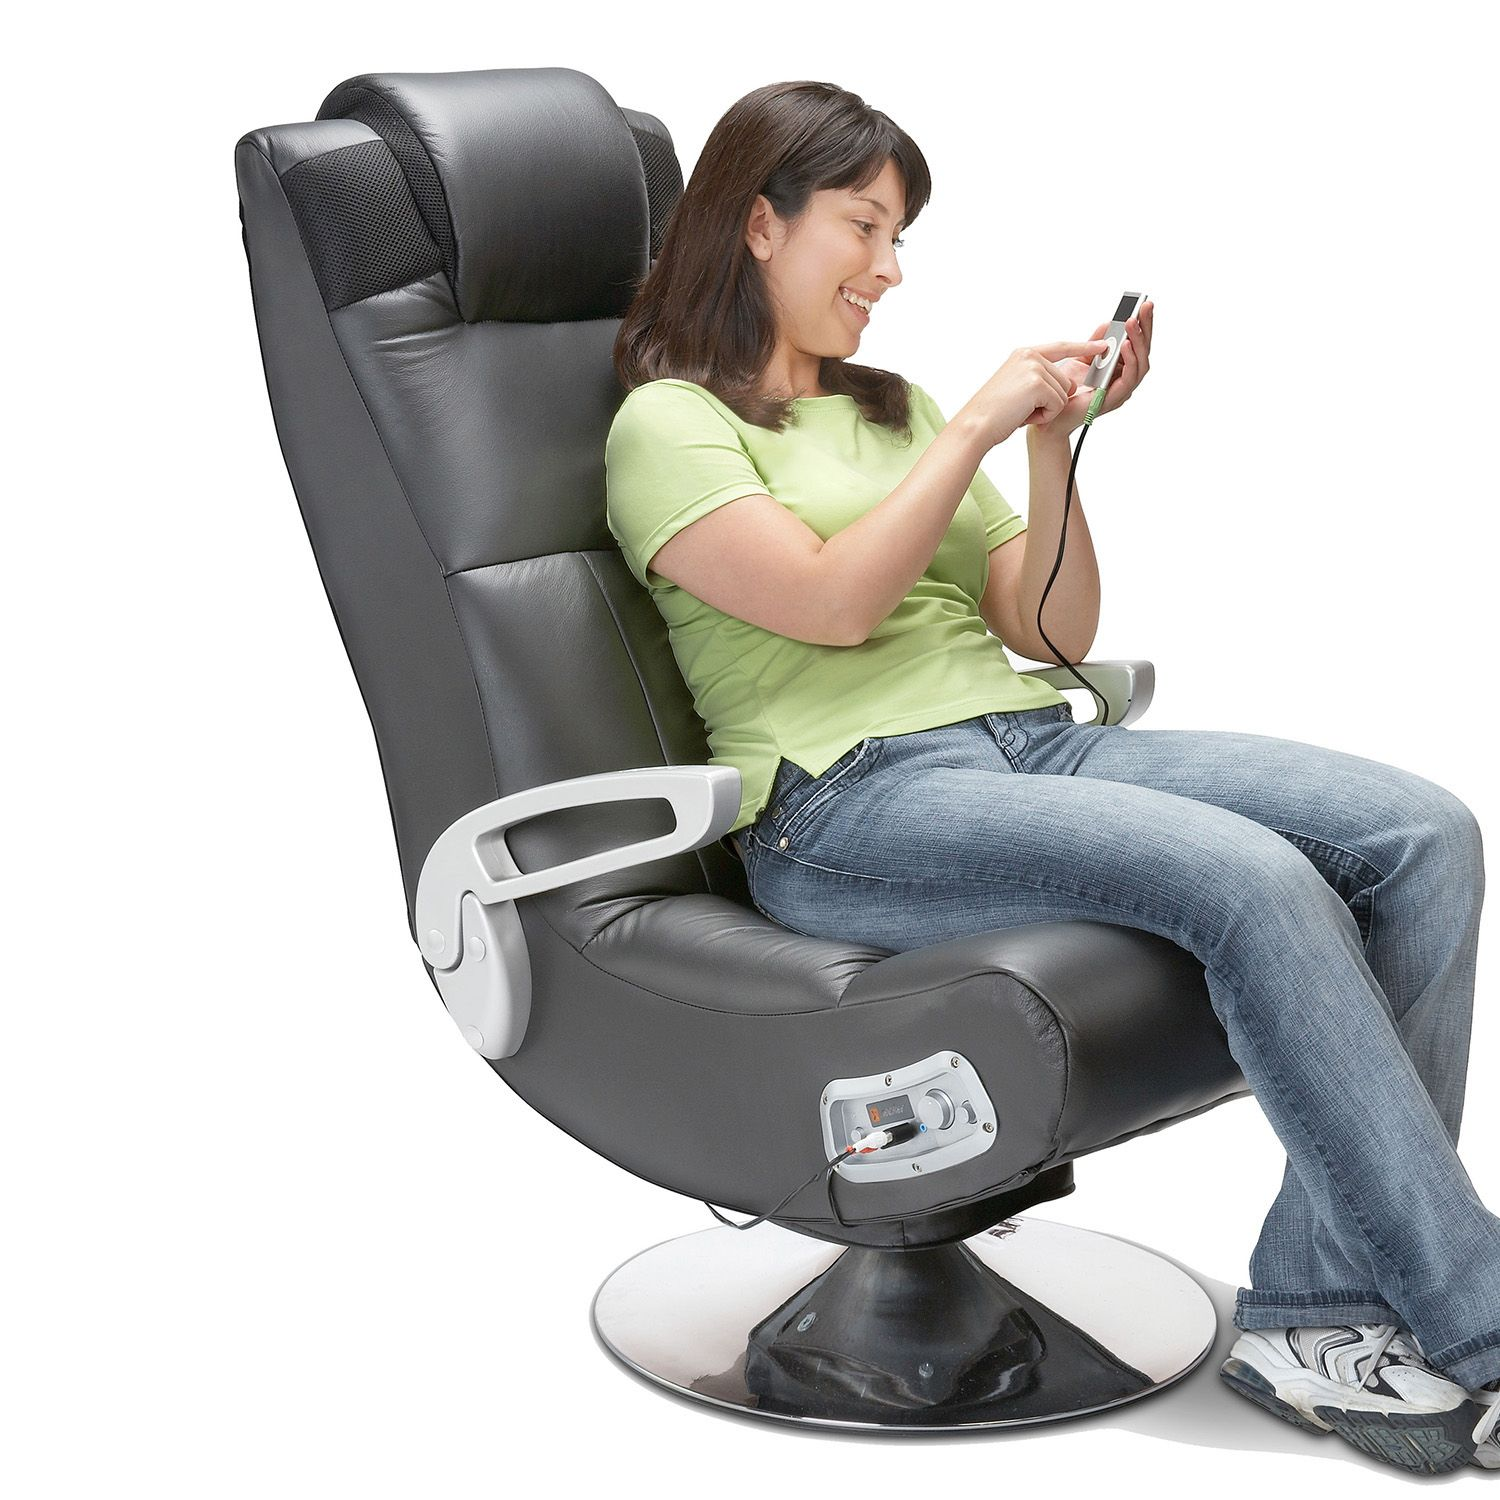 high how pad full massage get with chair size to chairs tech homedics kohls started